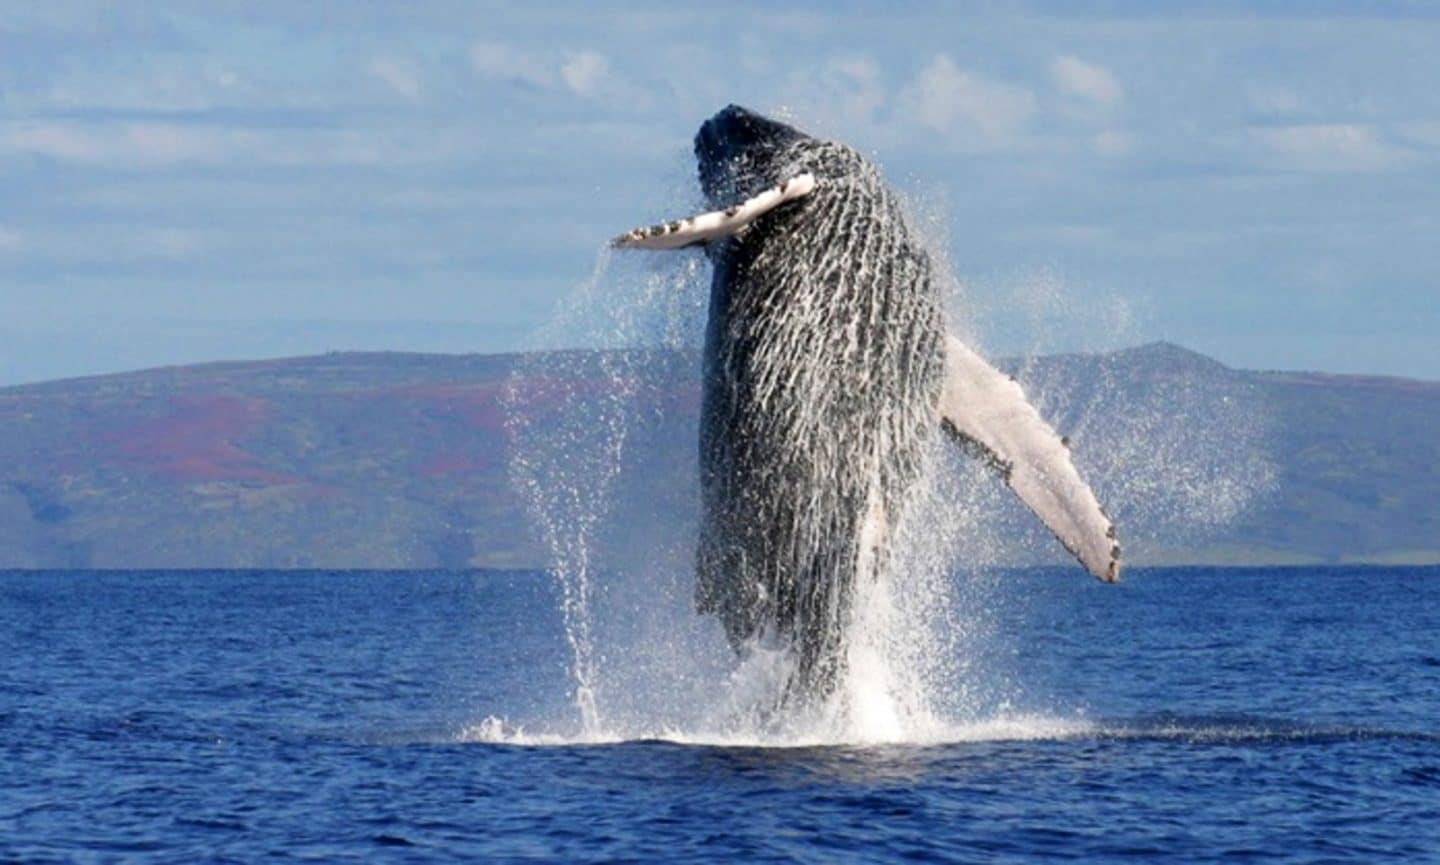 Whales Amp Dolphin Watching Tour Costa Rica Waterfall Tours